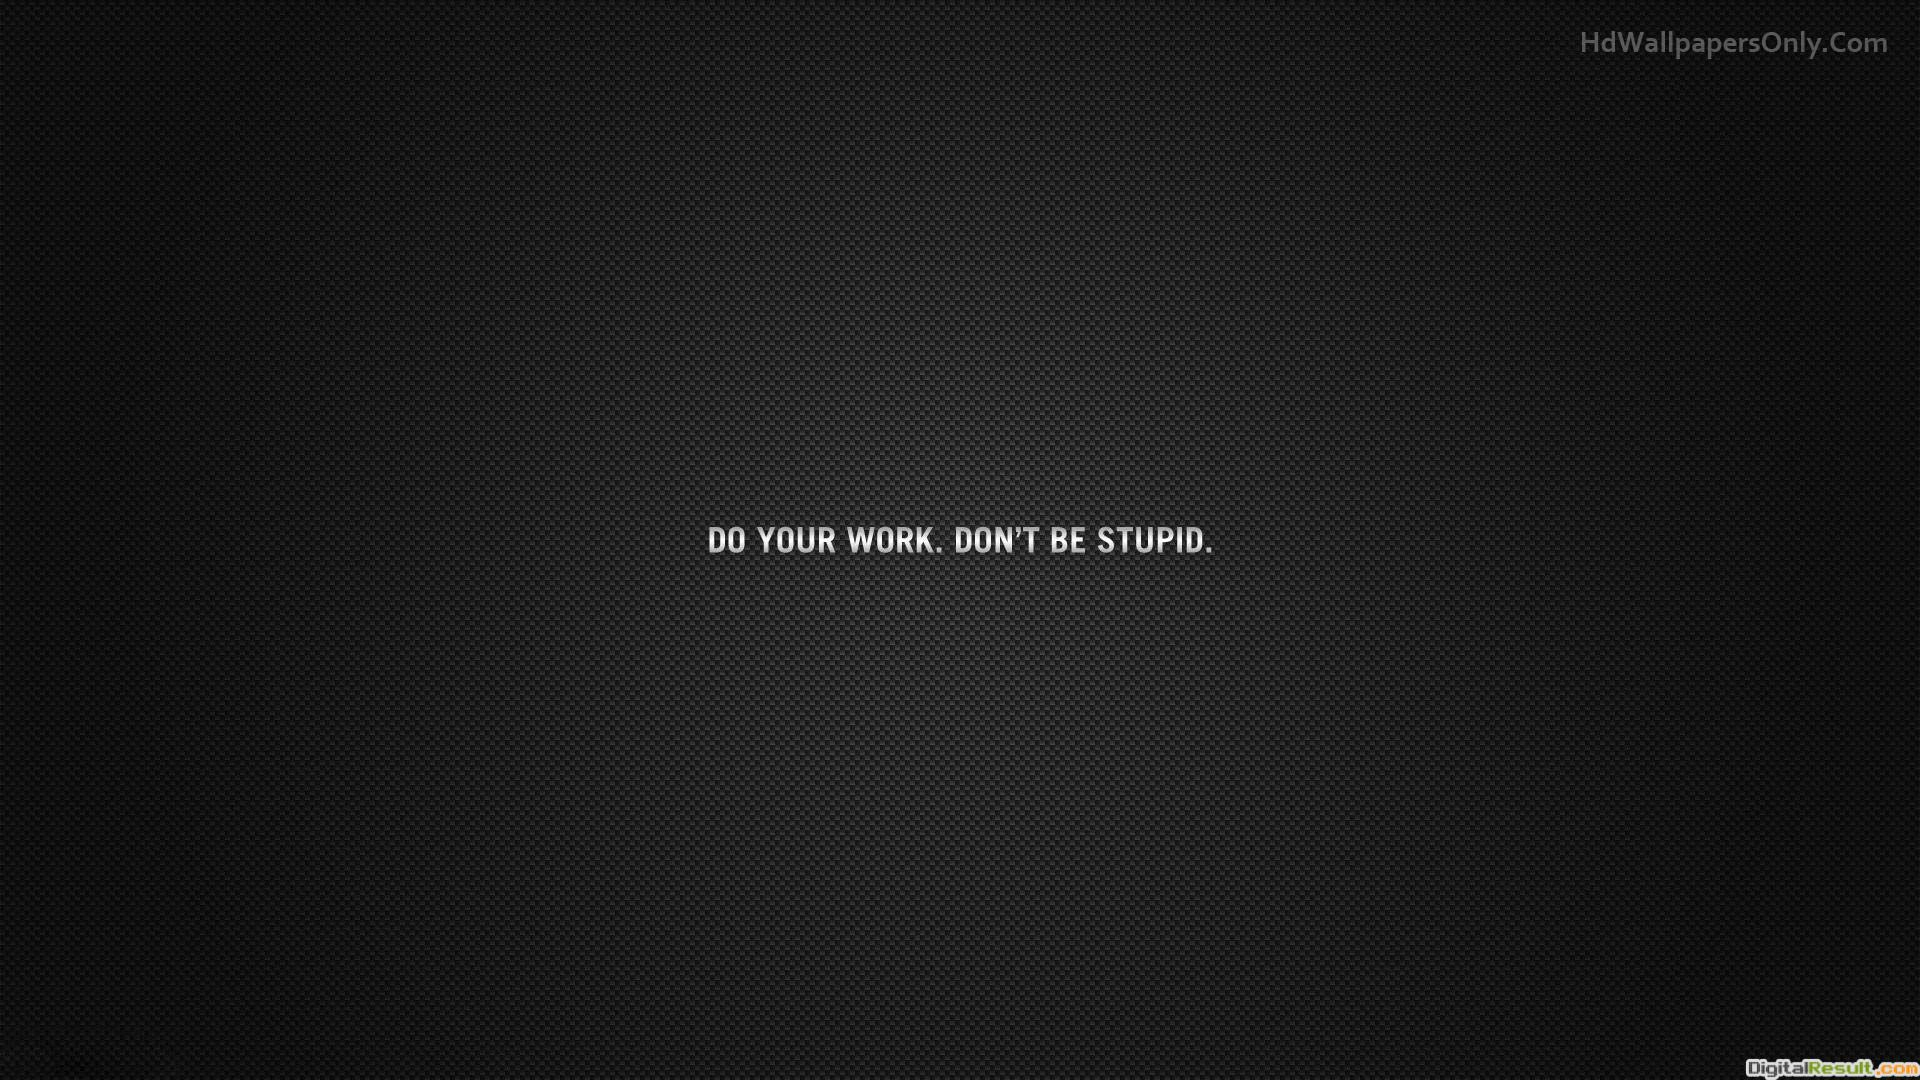 3 set these motivational quotes wallpapers as your desktop